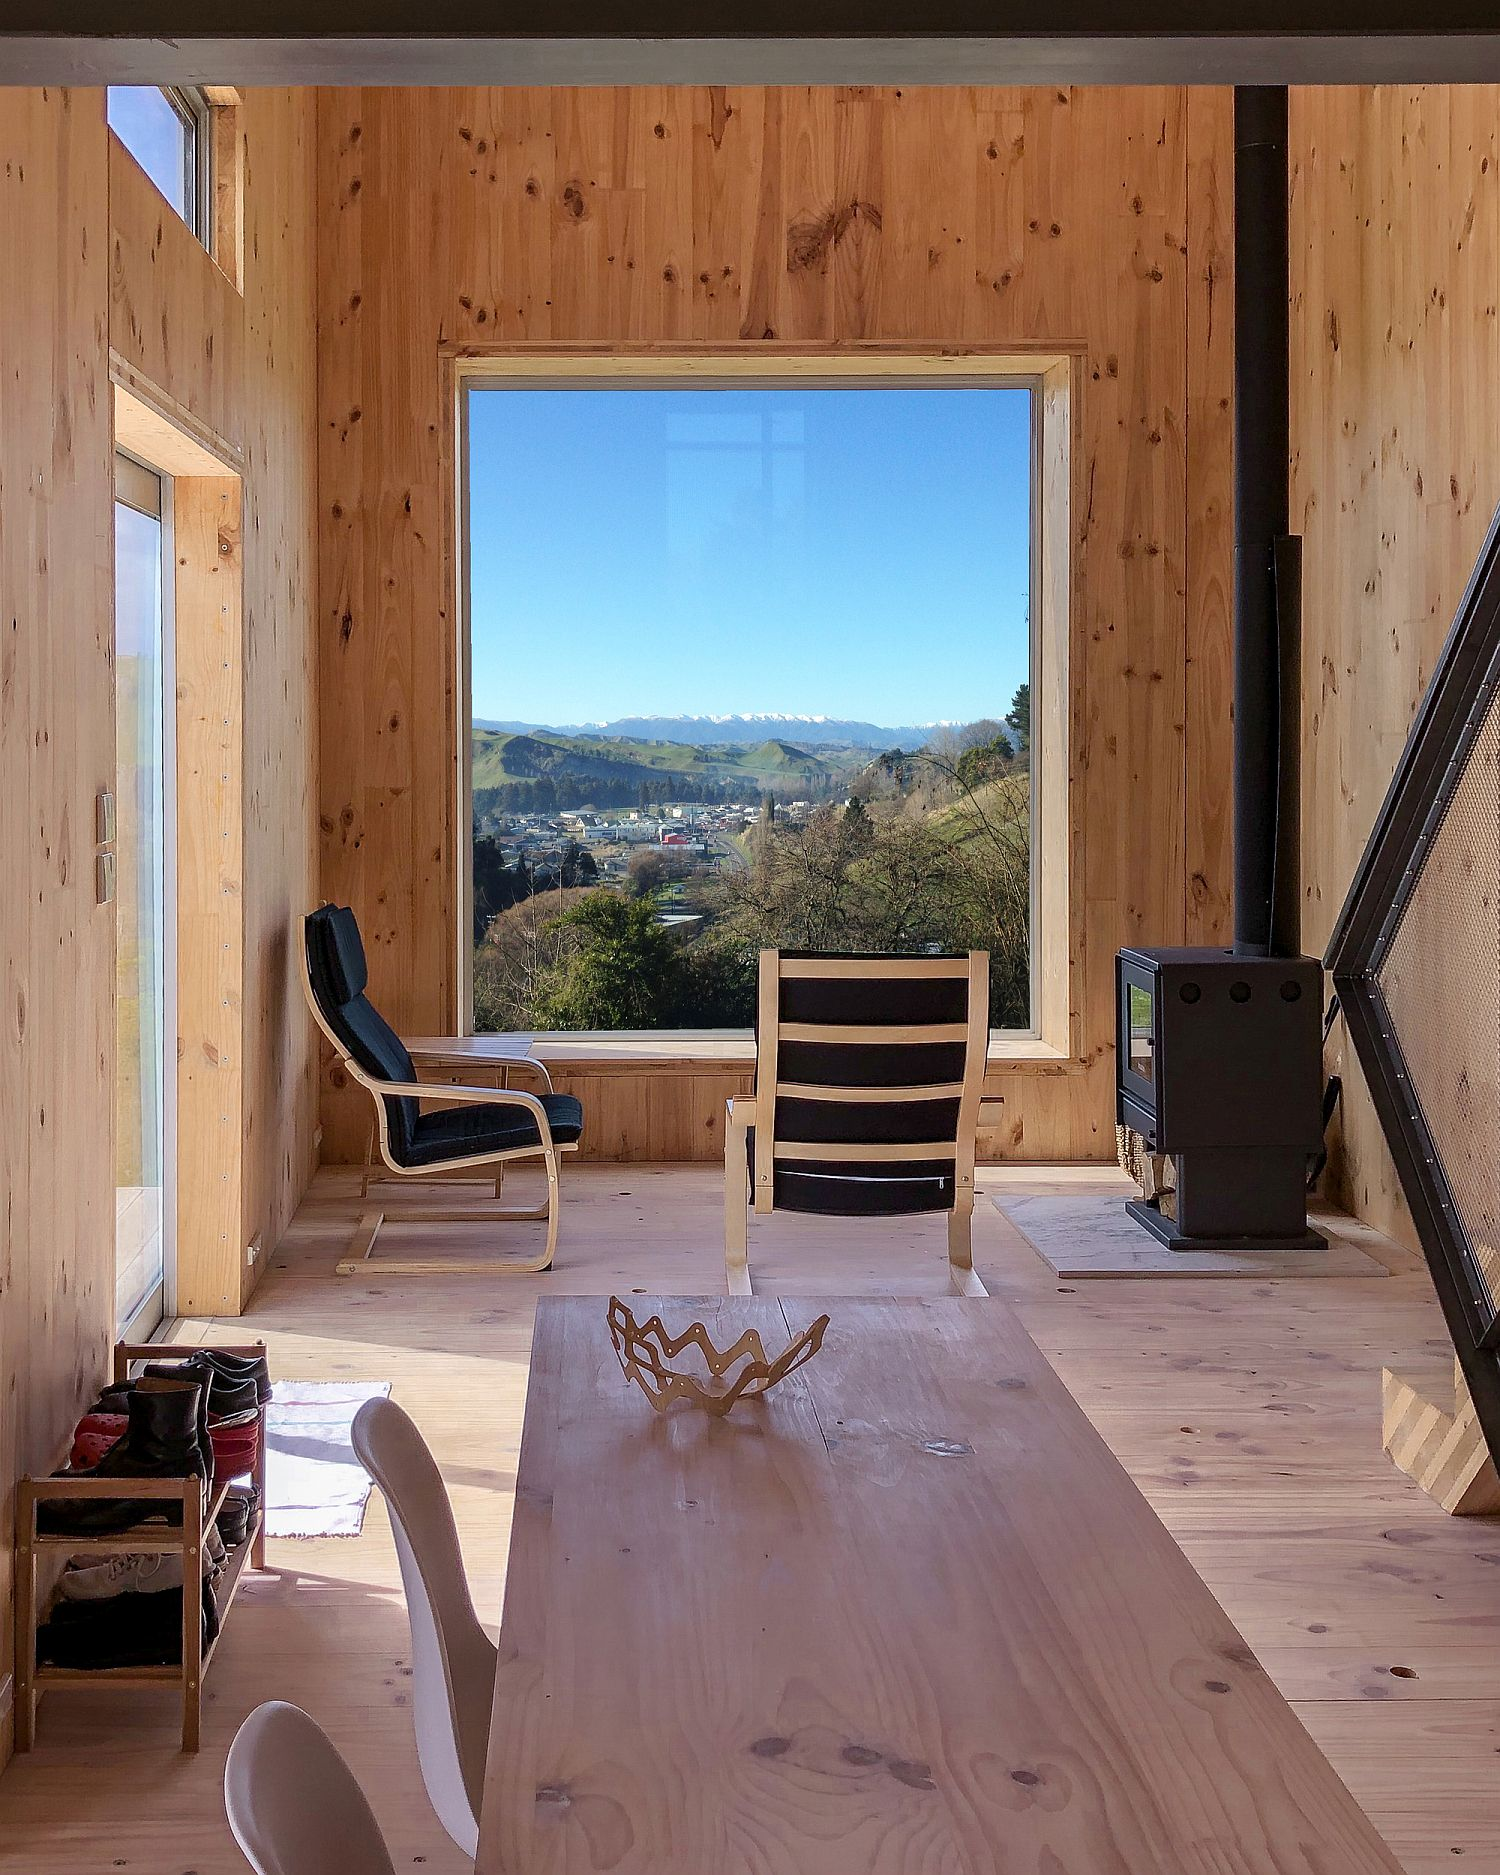 Picturesque views of forest landscape and hills from the cabin